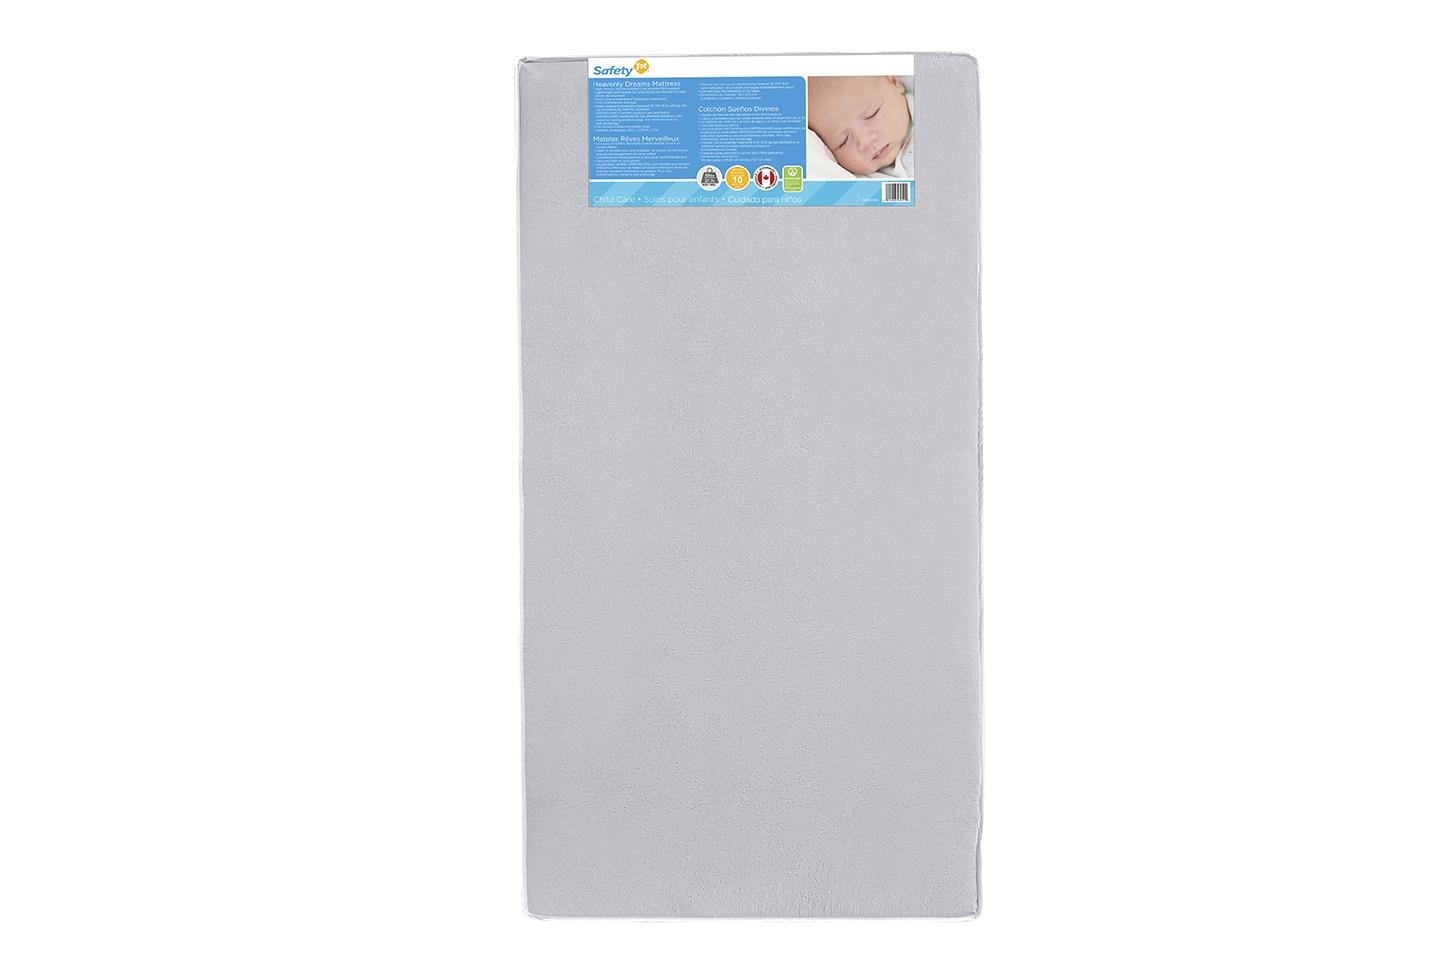 Safety 1st Heavenly Dreams White Crib & Toddler Bed Mattress for Baby & Toddler, Water